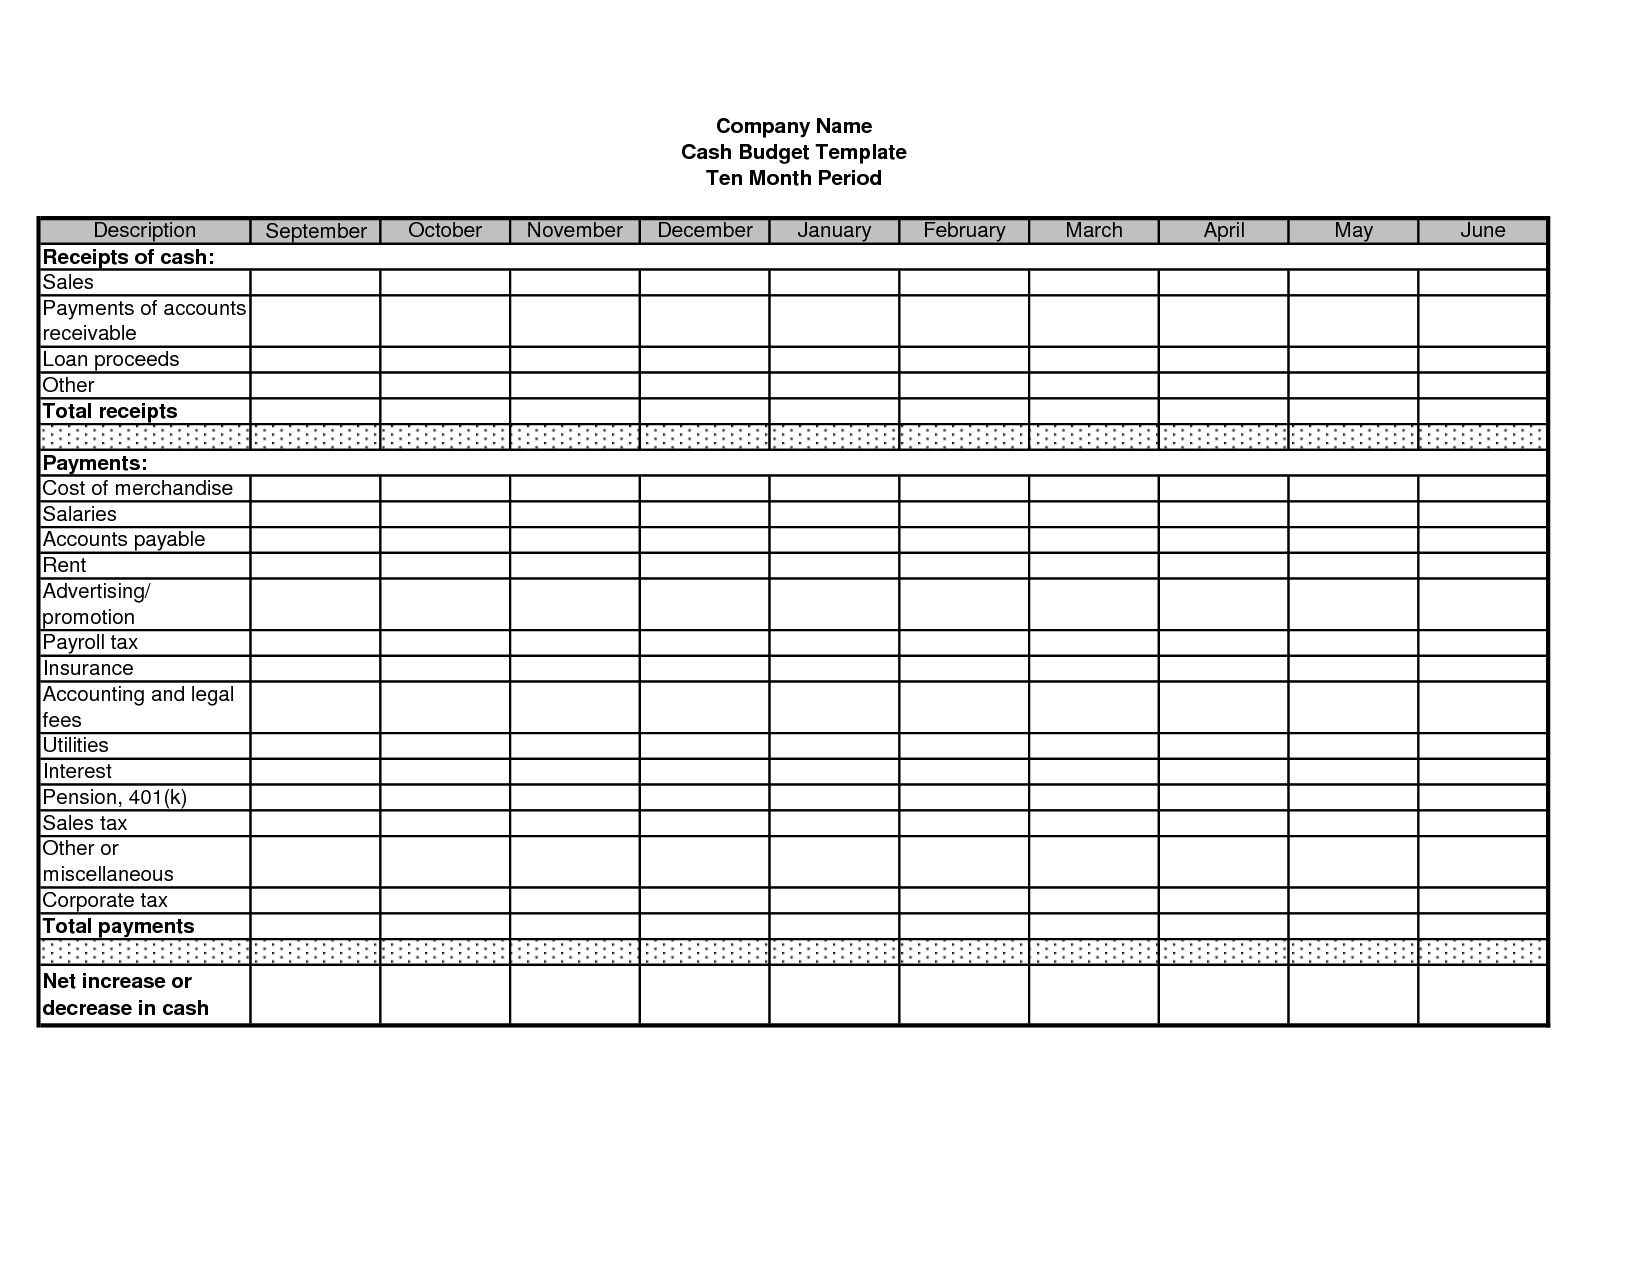 001 Monthly Cash Budget Template Plan Striking Templates Dave